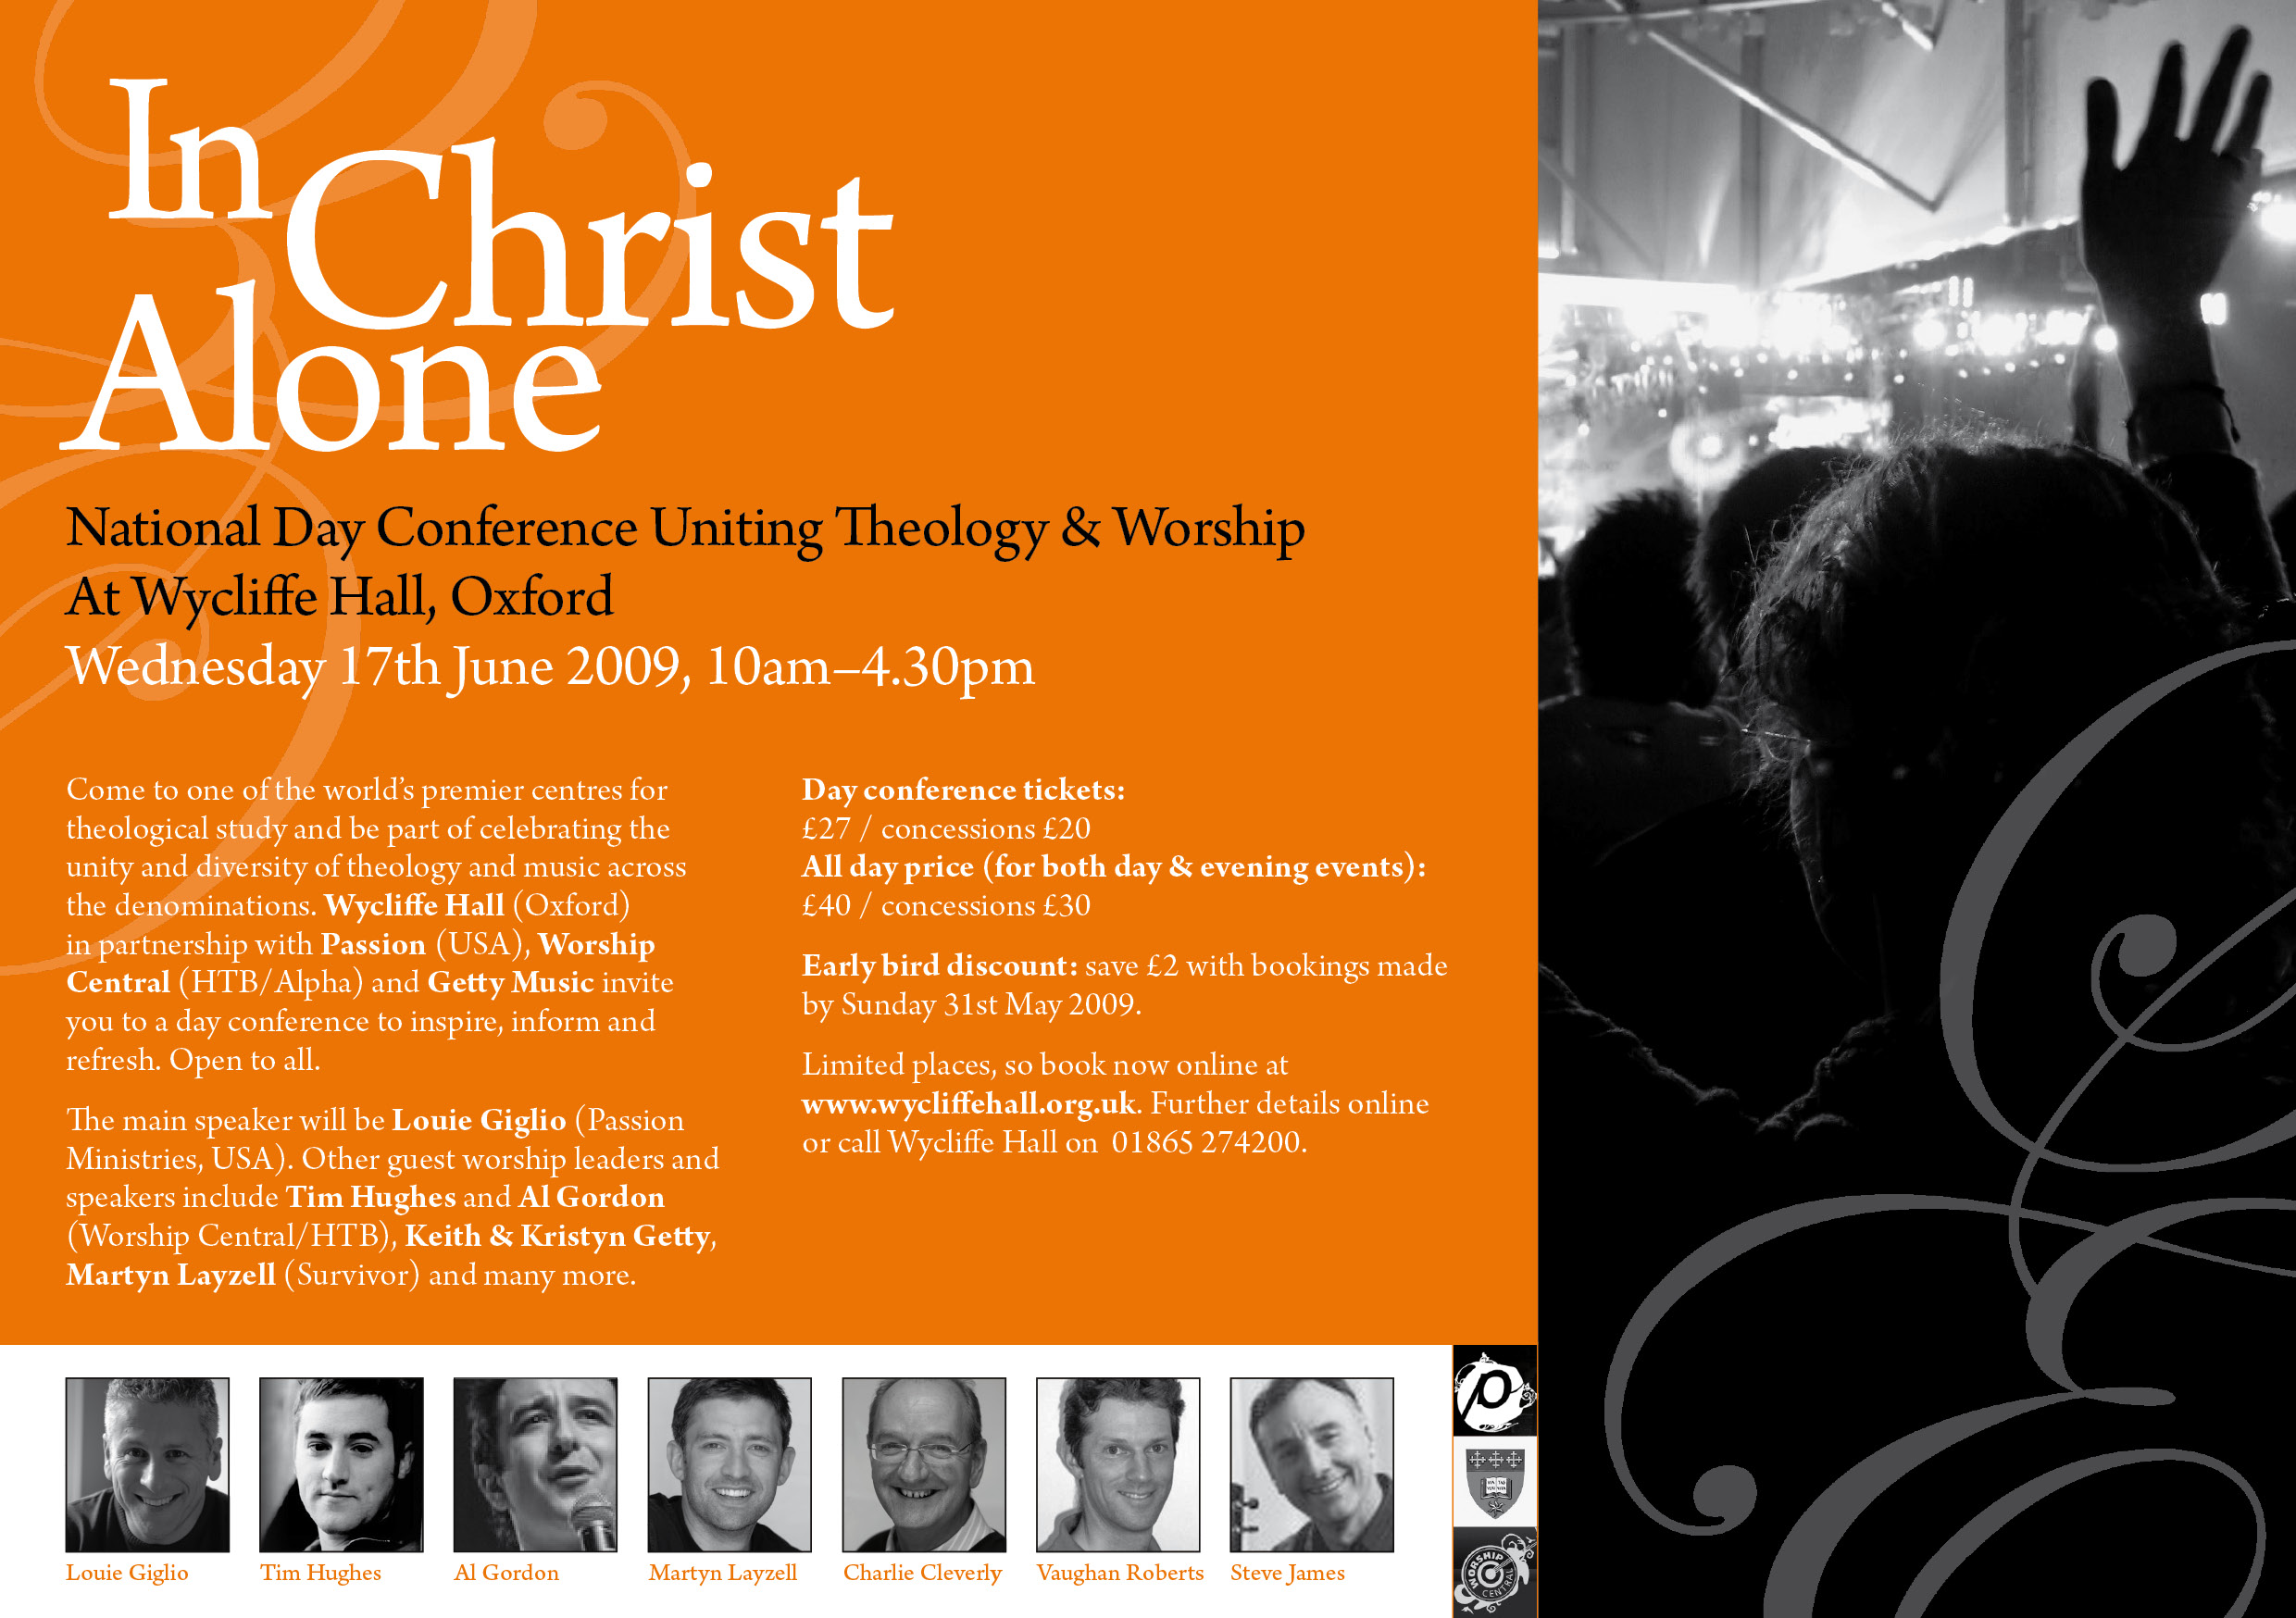 in-christ-alone-wycliffe-event-louie-giglio-passion